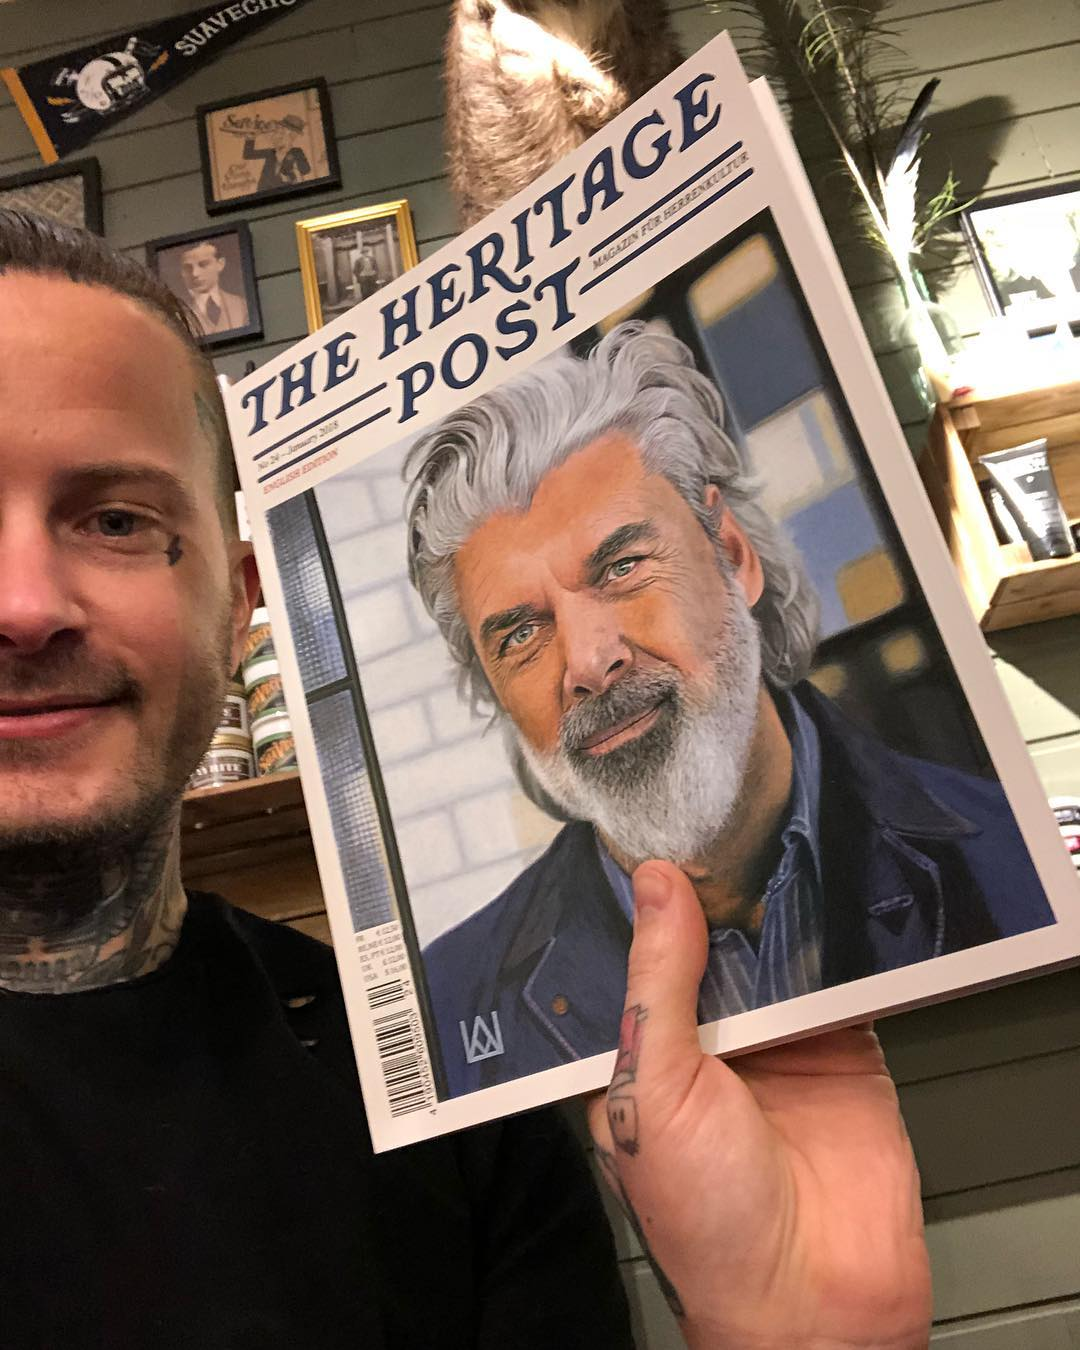 I am pleased to announce that we finally have @theheritagepost  magazine at @greaseandpeace . The Best magazine out on the market . Let me know what you think and I'll start selling them here at the shop . Have a great day